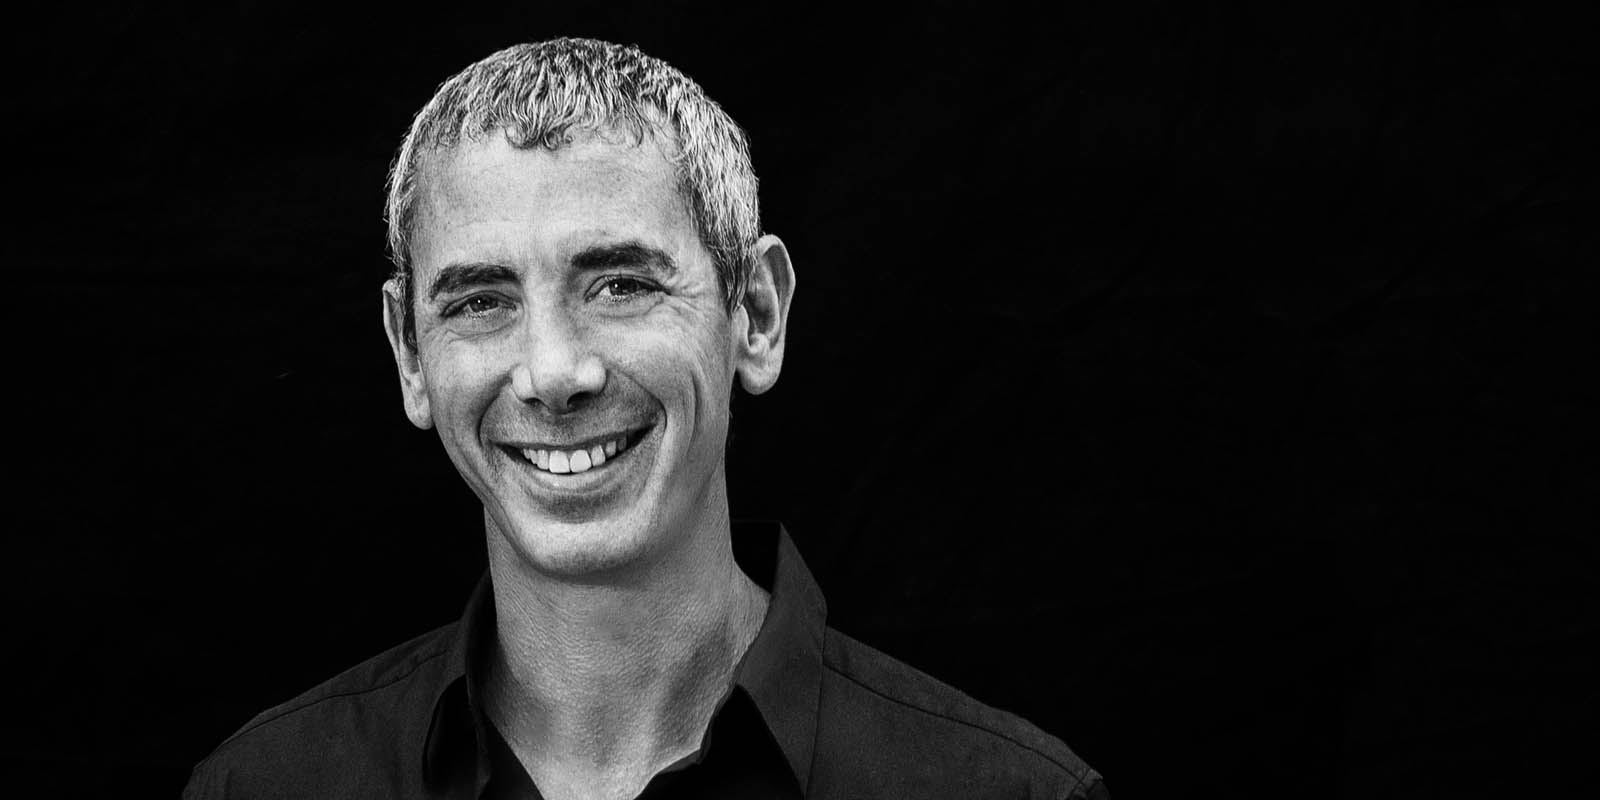 Steven Kotler is a New York Times bestselling author, an award-winning journalist and the co-founder/director of research for the Flow Genome Project. He is one of the world's leading experts on high performance. In this episode, he teaches us about flow.